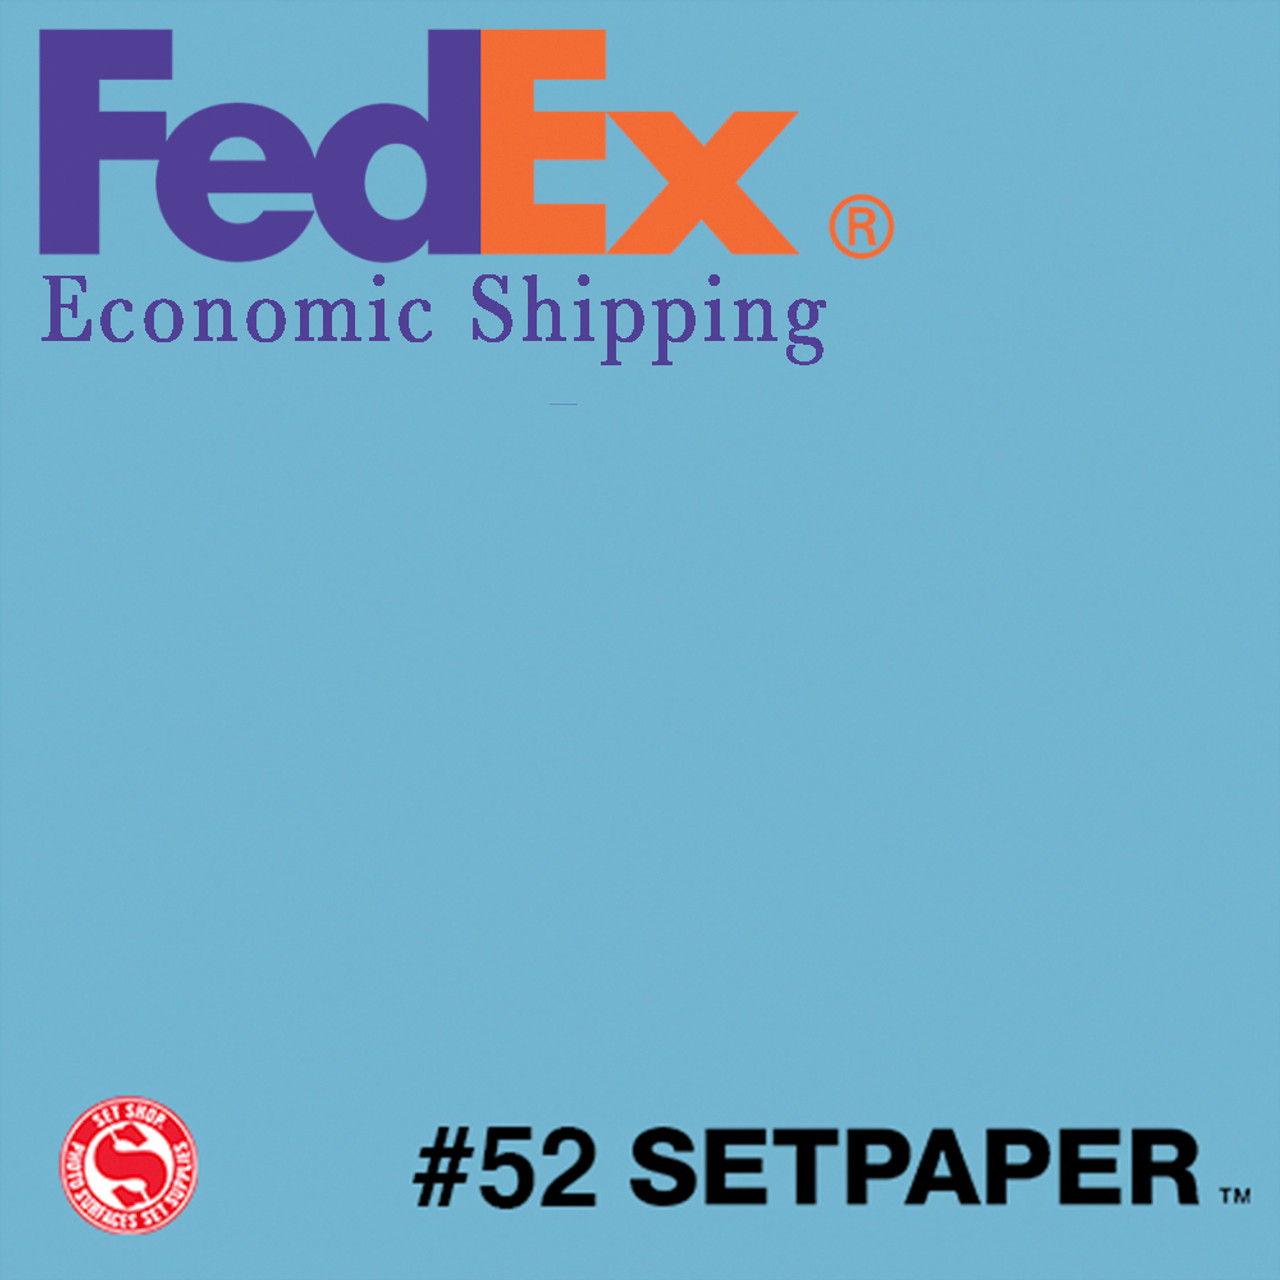 "(ECONOMIC SHIPPING) SETPAPER - PALE BLUE 48"" x 36' (1.3 x 11m)"